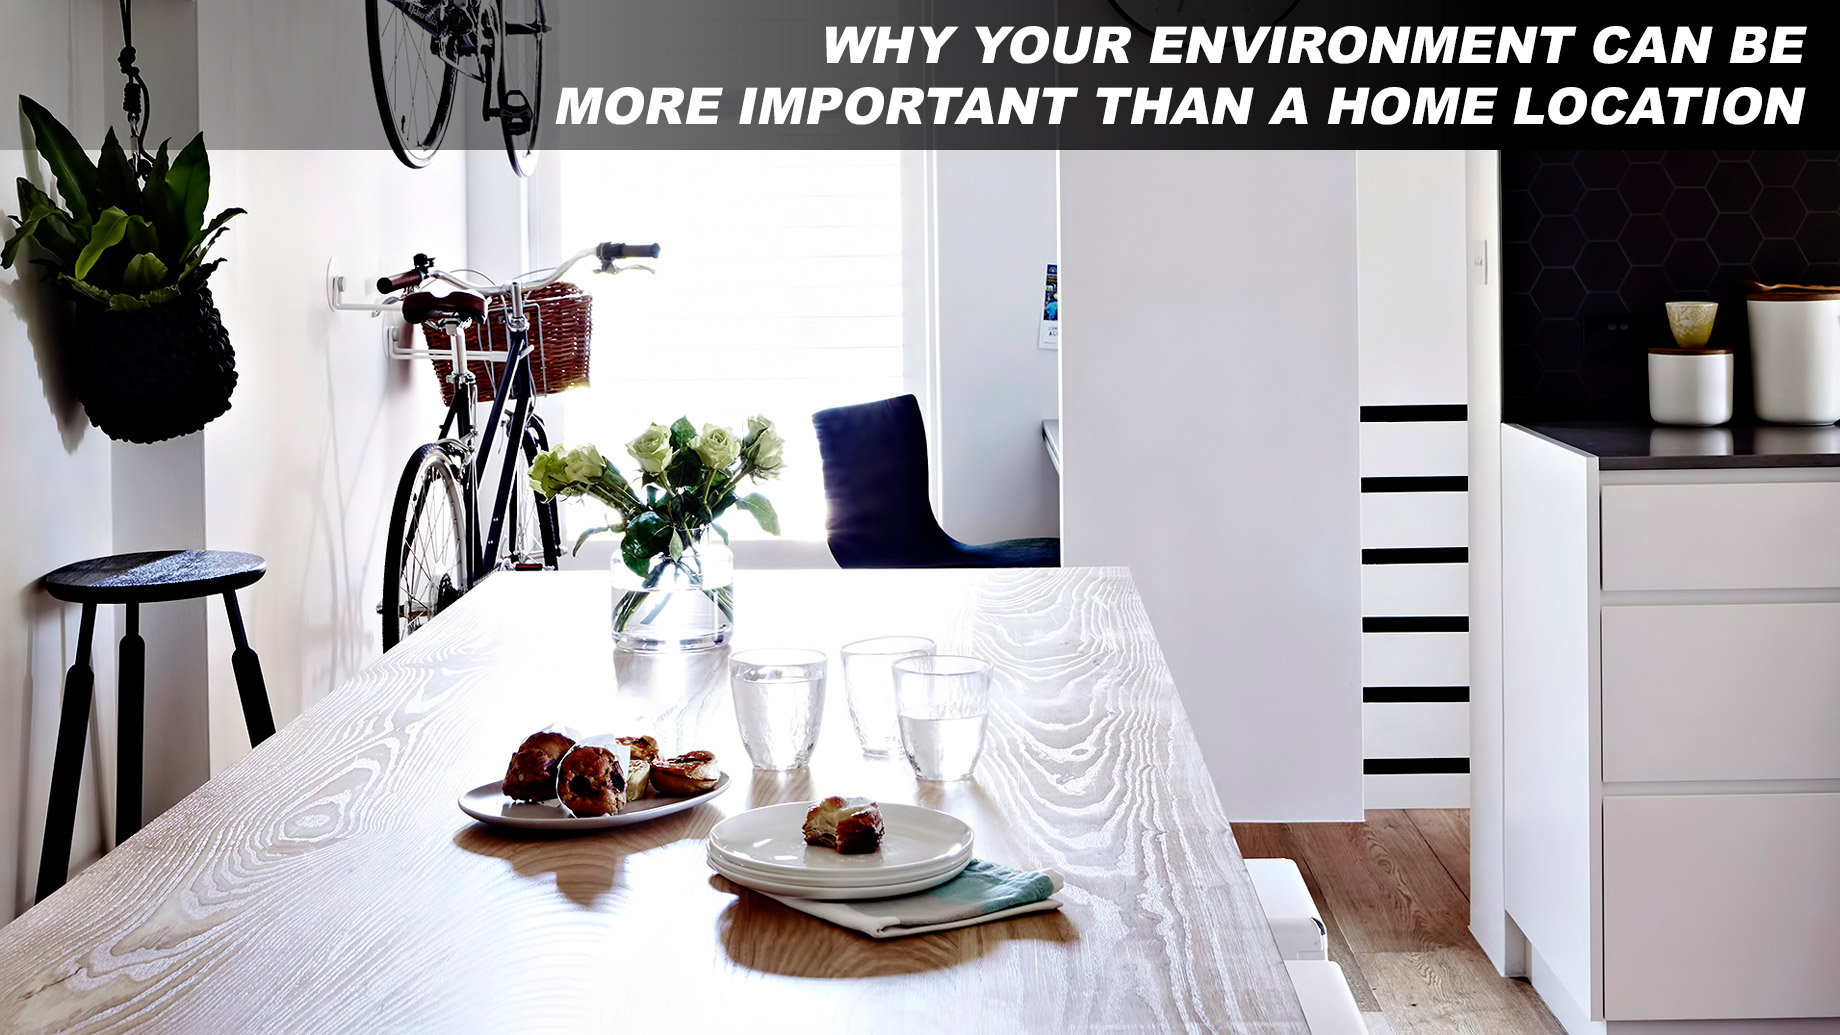 Why Your Environment Can Be More Important Than A Home Location